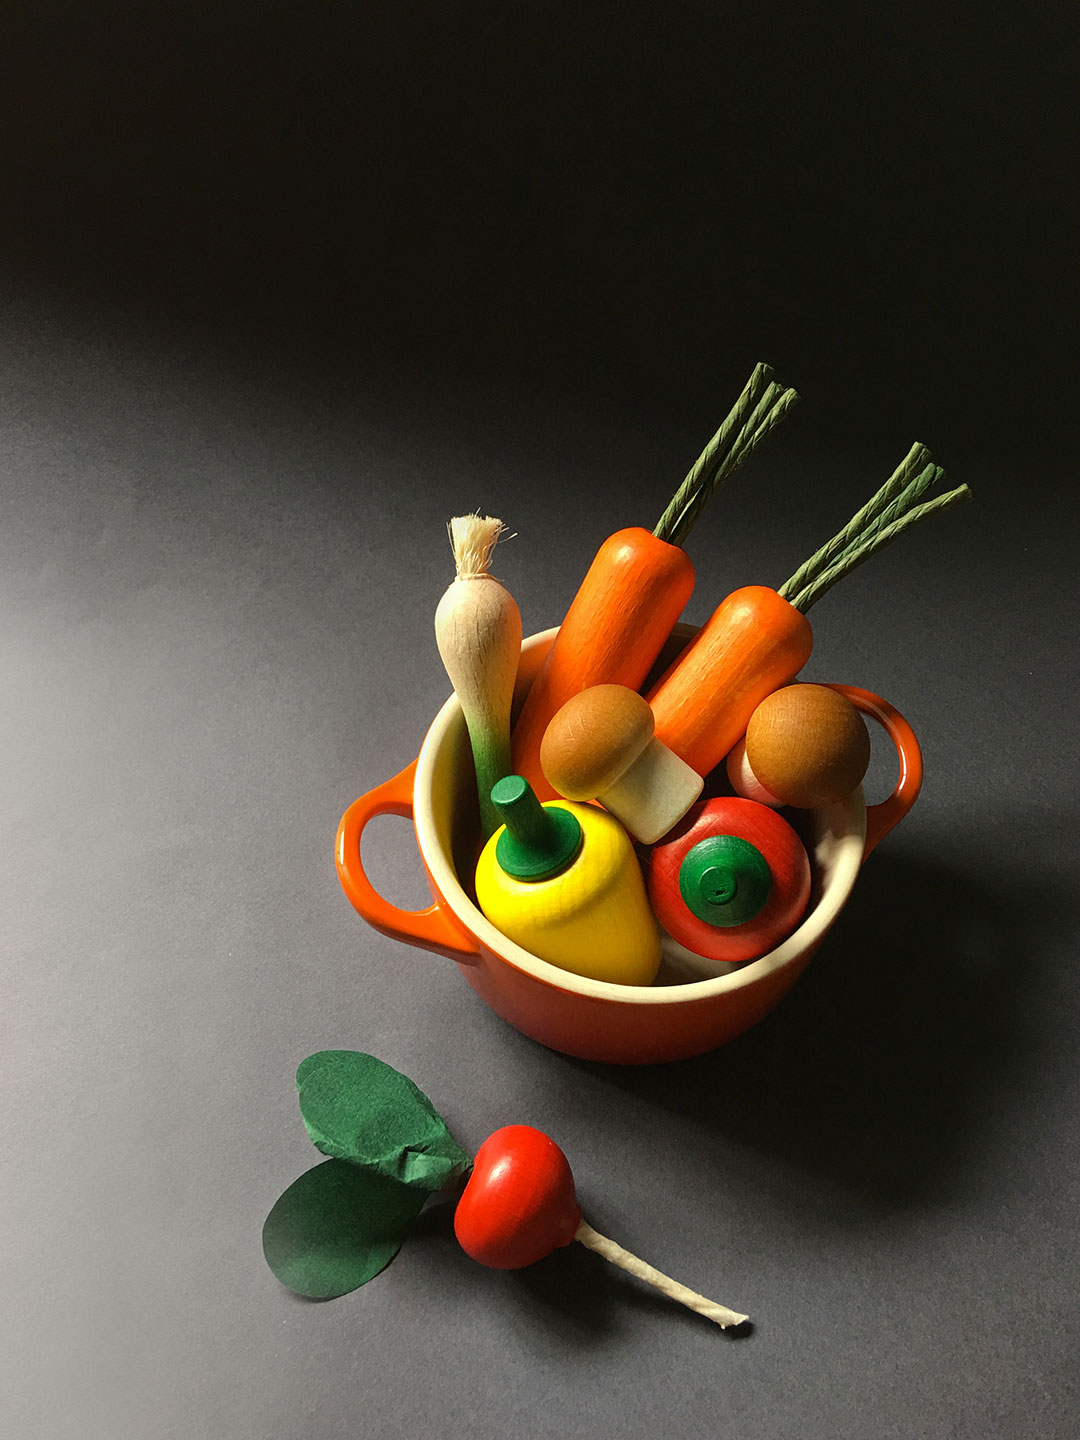 Erzi Wooden Play food for pretend play, play grocery, play kitchen, wooden fruit, wooden vegetables, made in Germany